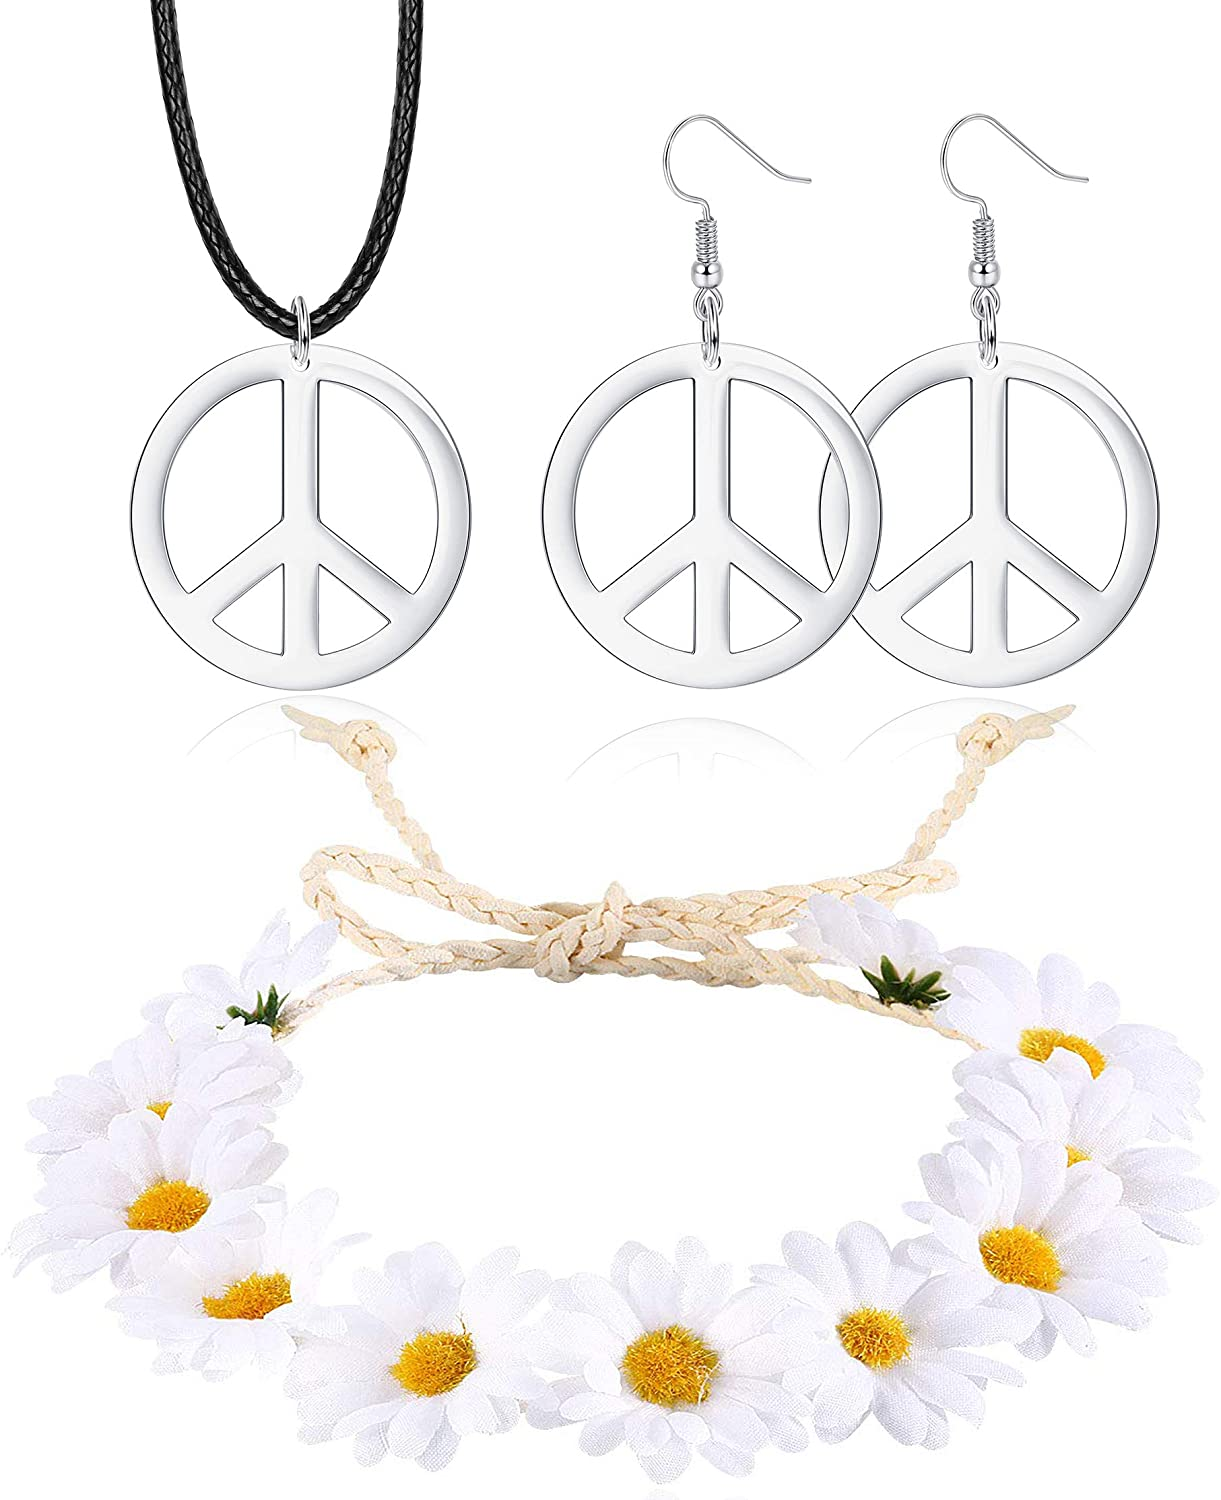 JOERICA Hippie Costume Set, Peace Sign Necklace, Peace Sign Earrings, Flower Crown Headband, 1960s 1970s Hippie Jewelry Accessories for Women